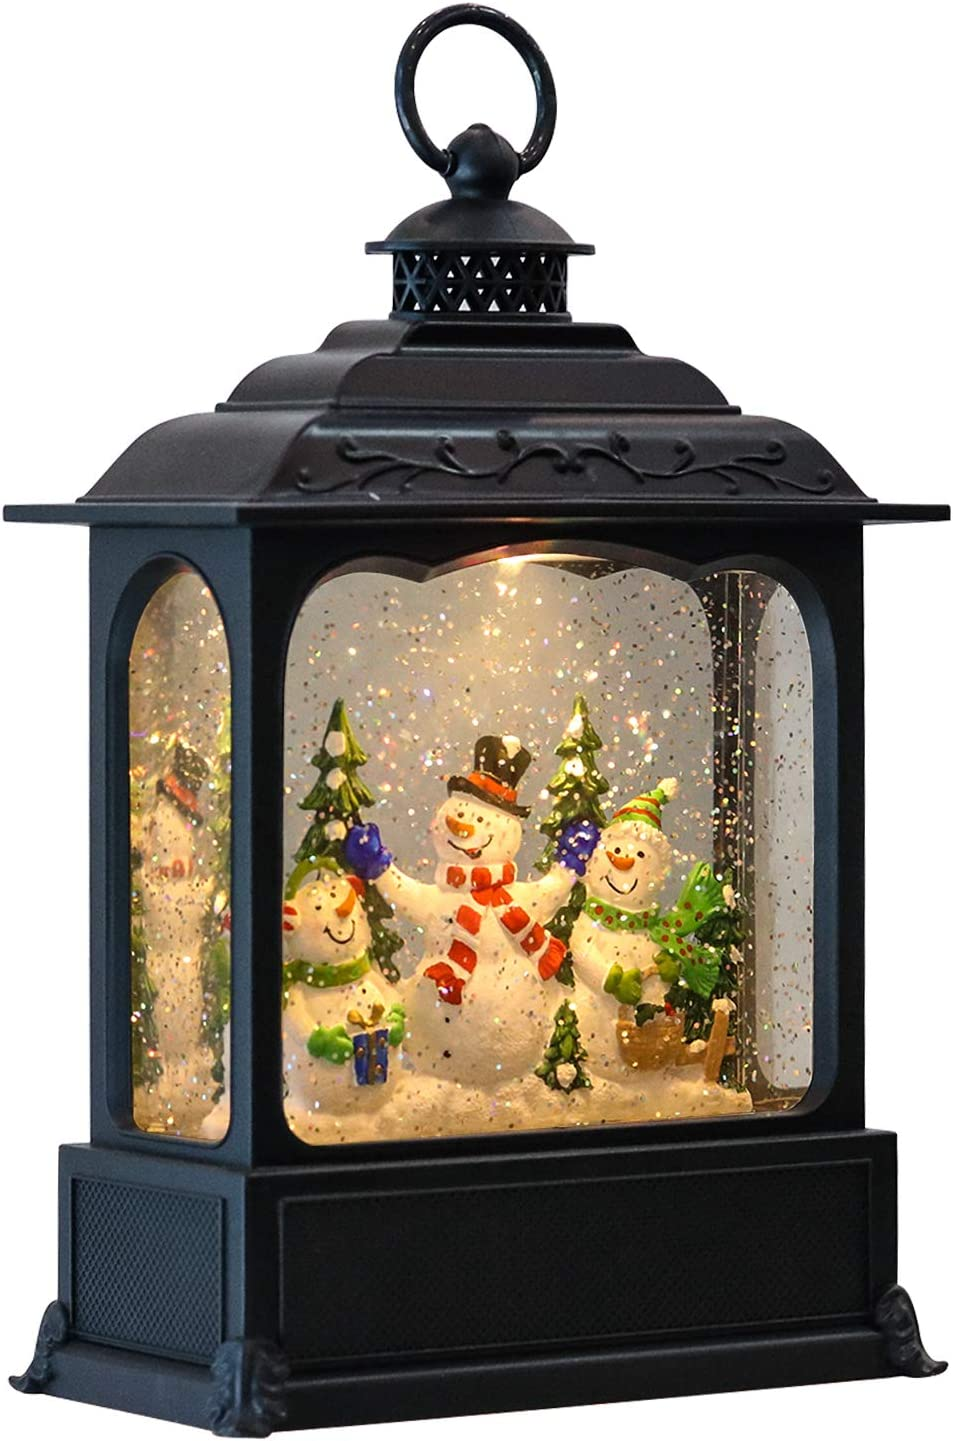 Eldnacele Musical Snow Globe Lantern with Timer, Lighted USB/Battery Operated Swirling Singing Water Glittering Lantern, Snow Globes Lantern for Adults and Kids Christmas Decoration- Snowman